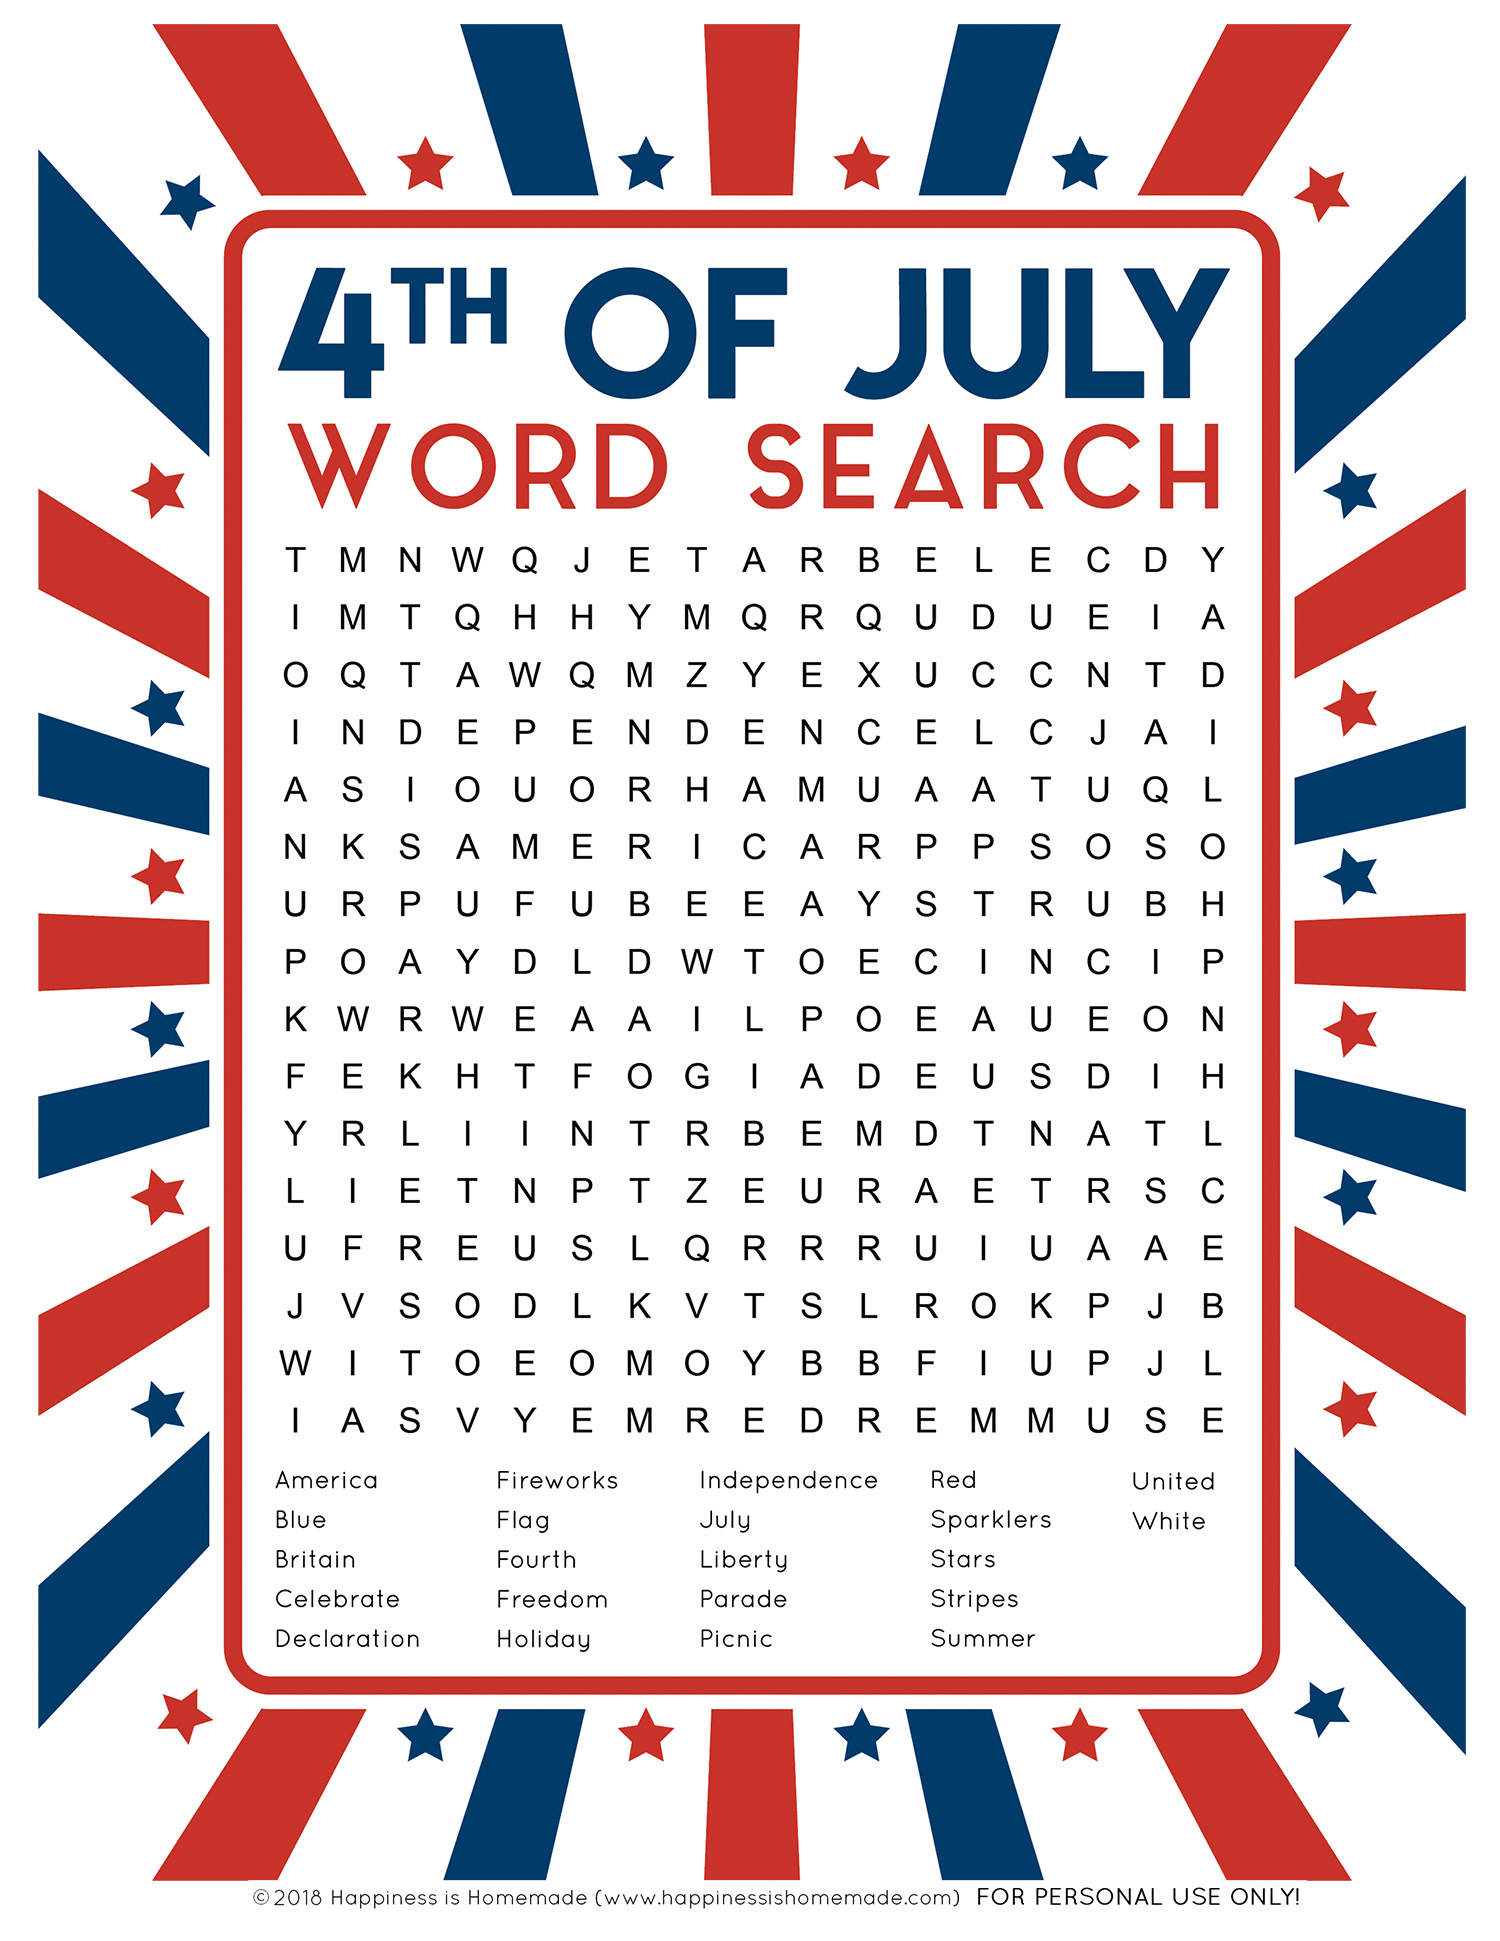 4Th Of July Word Search Printable - Happiness Is Homemade - Printable July 4Th Puzzles